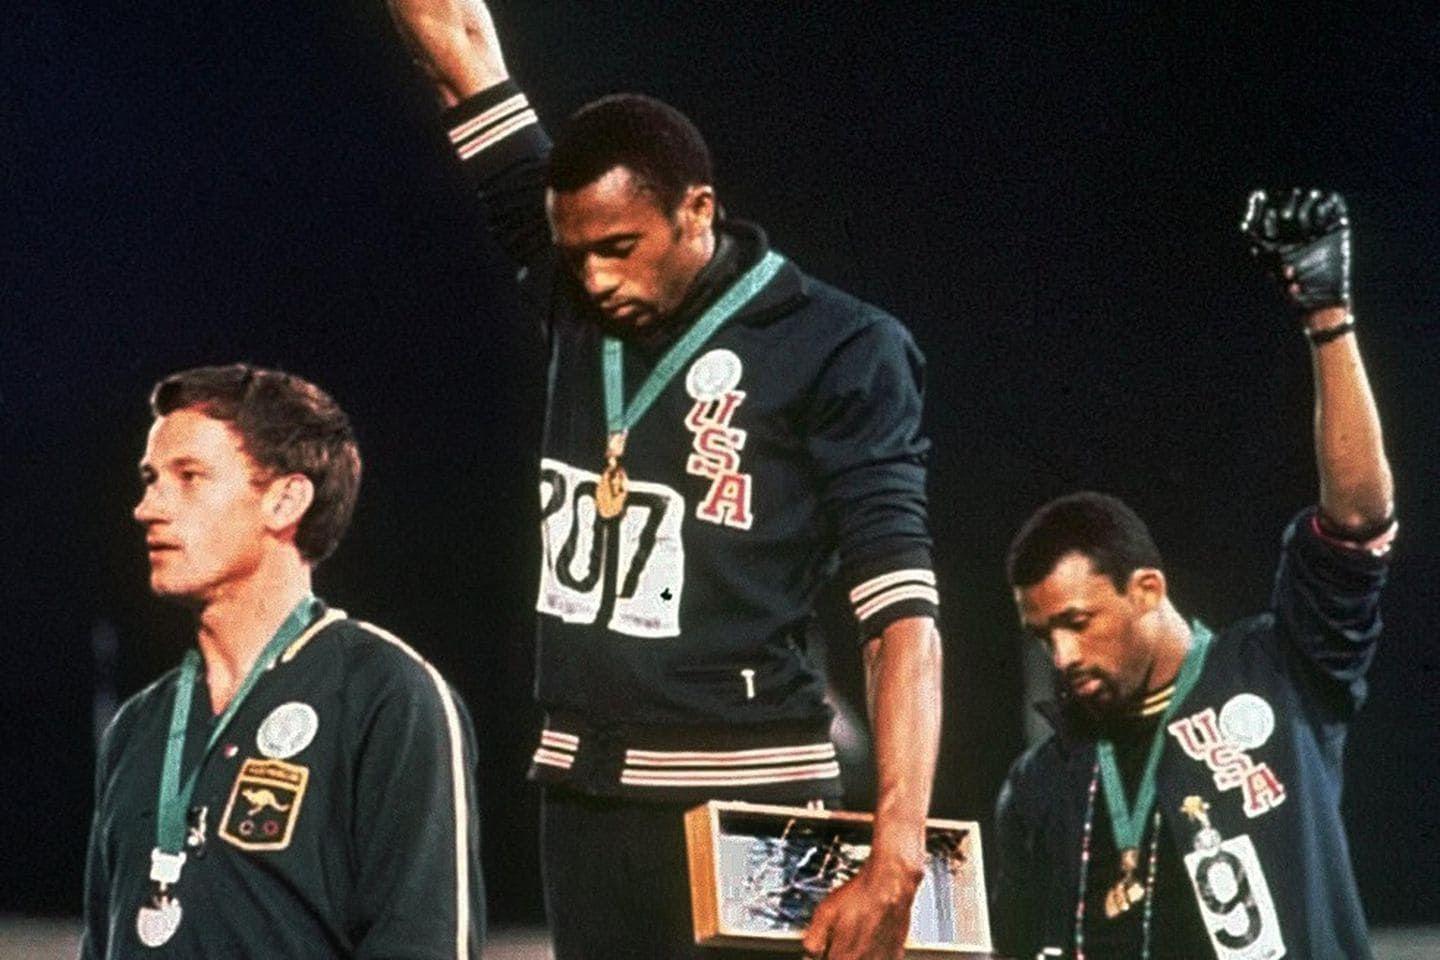 American track and field athletes Tommie Smith (C) and John Carlos (R), protest with the Black Power salute at the Summer Olympic games, Mexico City, Mexico, October 19, 1968. John Dominis/The LIFE Picture Collection via Getty Images 1968: John Carlos and Tommie Smith raise their fists in the Black Power salute